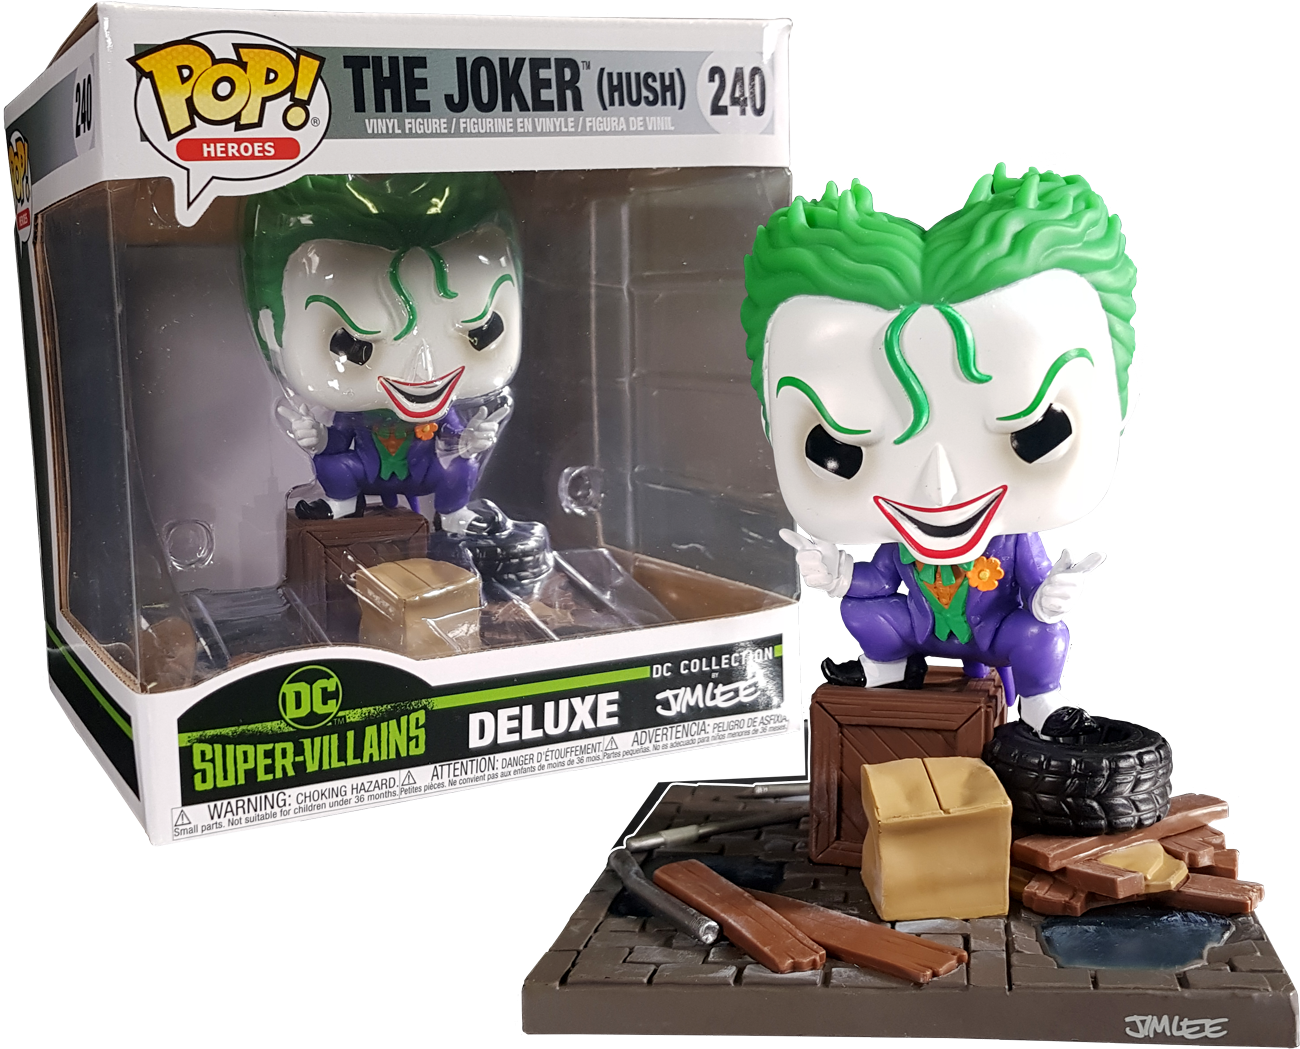 Funko Pop Batman Hush Joker In Alley Jim Lee Collection Deluxe 240 The Amazing Collectables